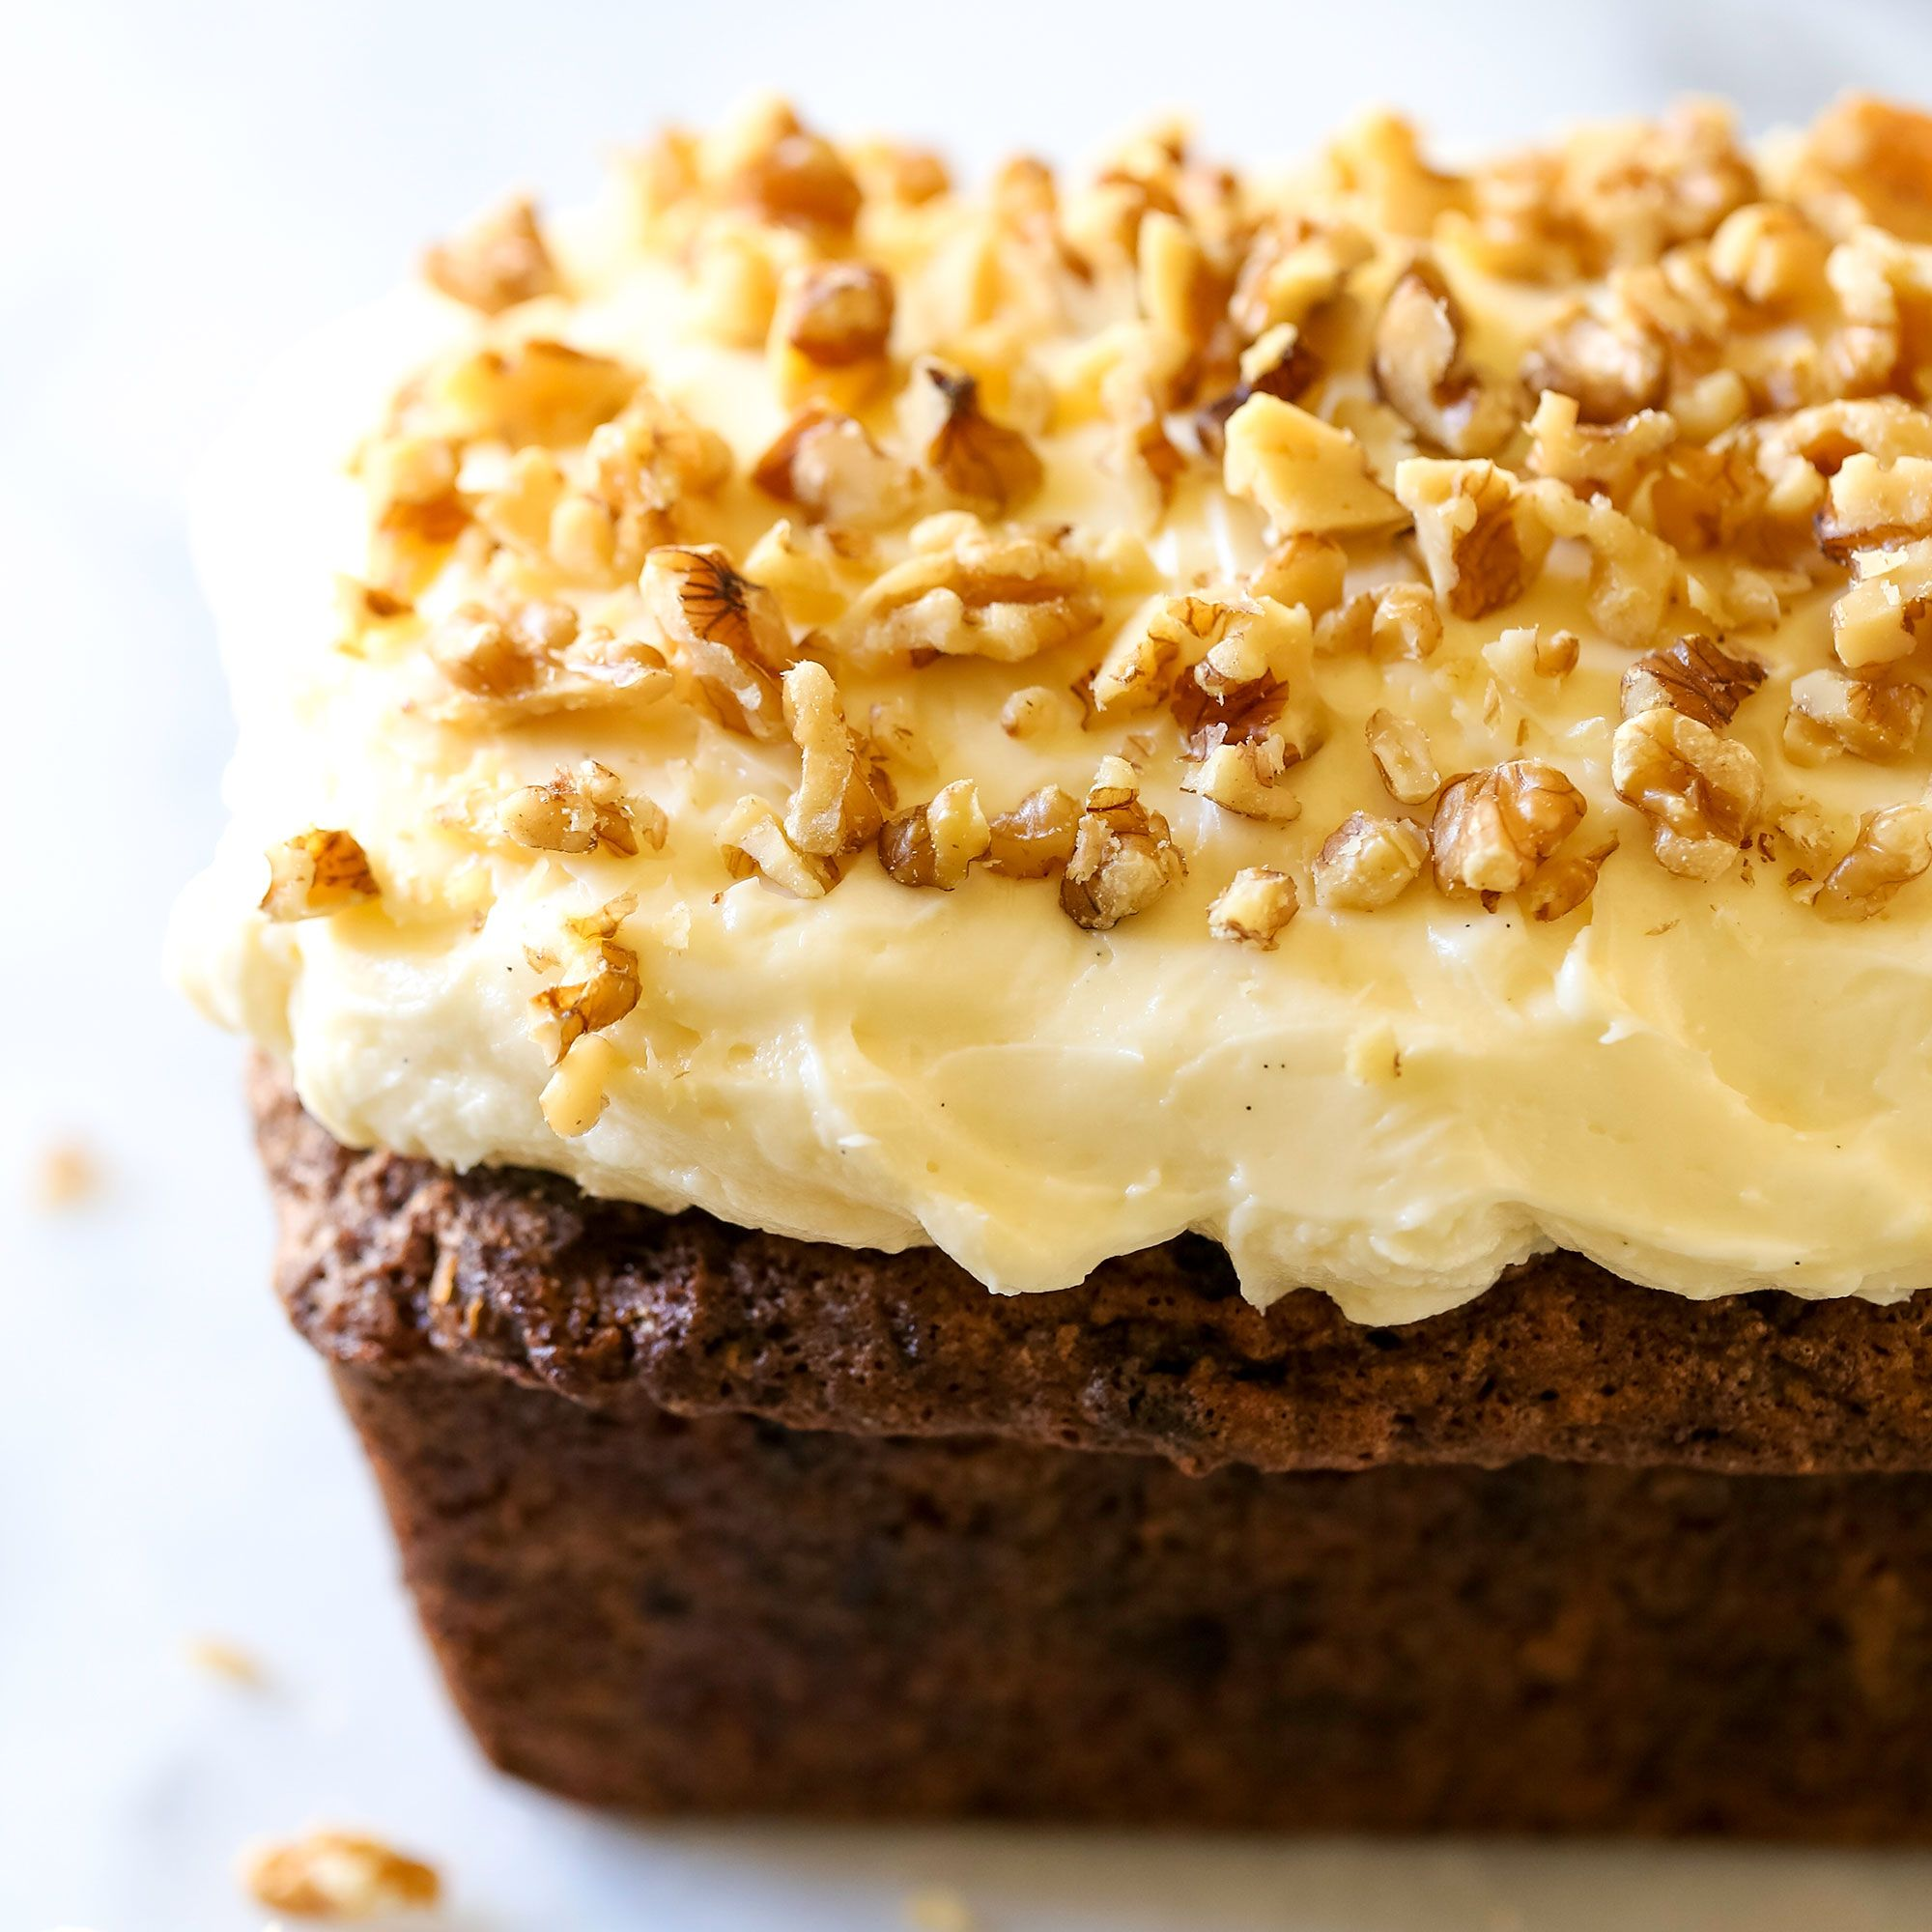 Carrot Walnut Loaf with Cream Cheese frosting is simple, moist, tender, and delicious. It's the perfect sweet recipe for spring!